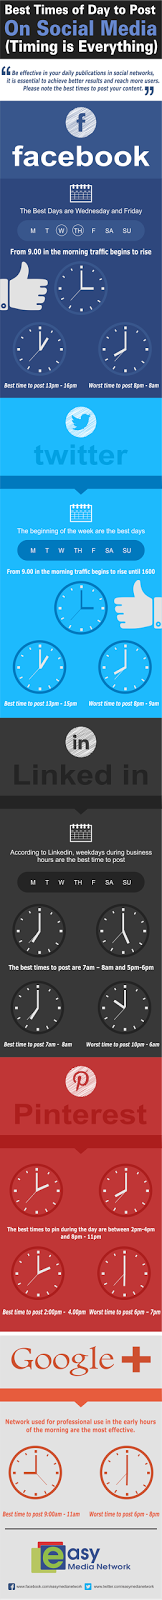 Best Time To Share Something on Social Media Platform - An Infographic